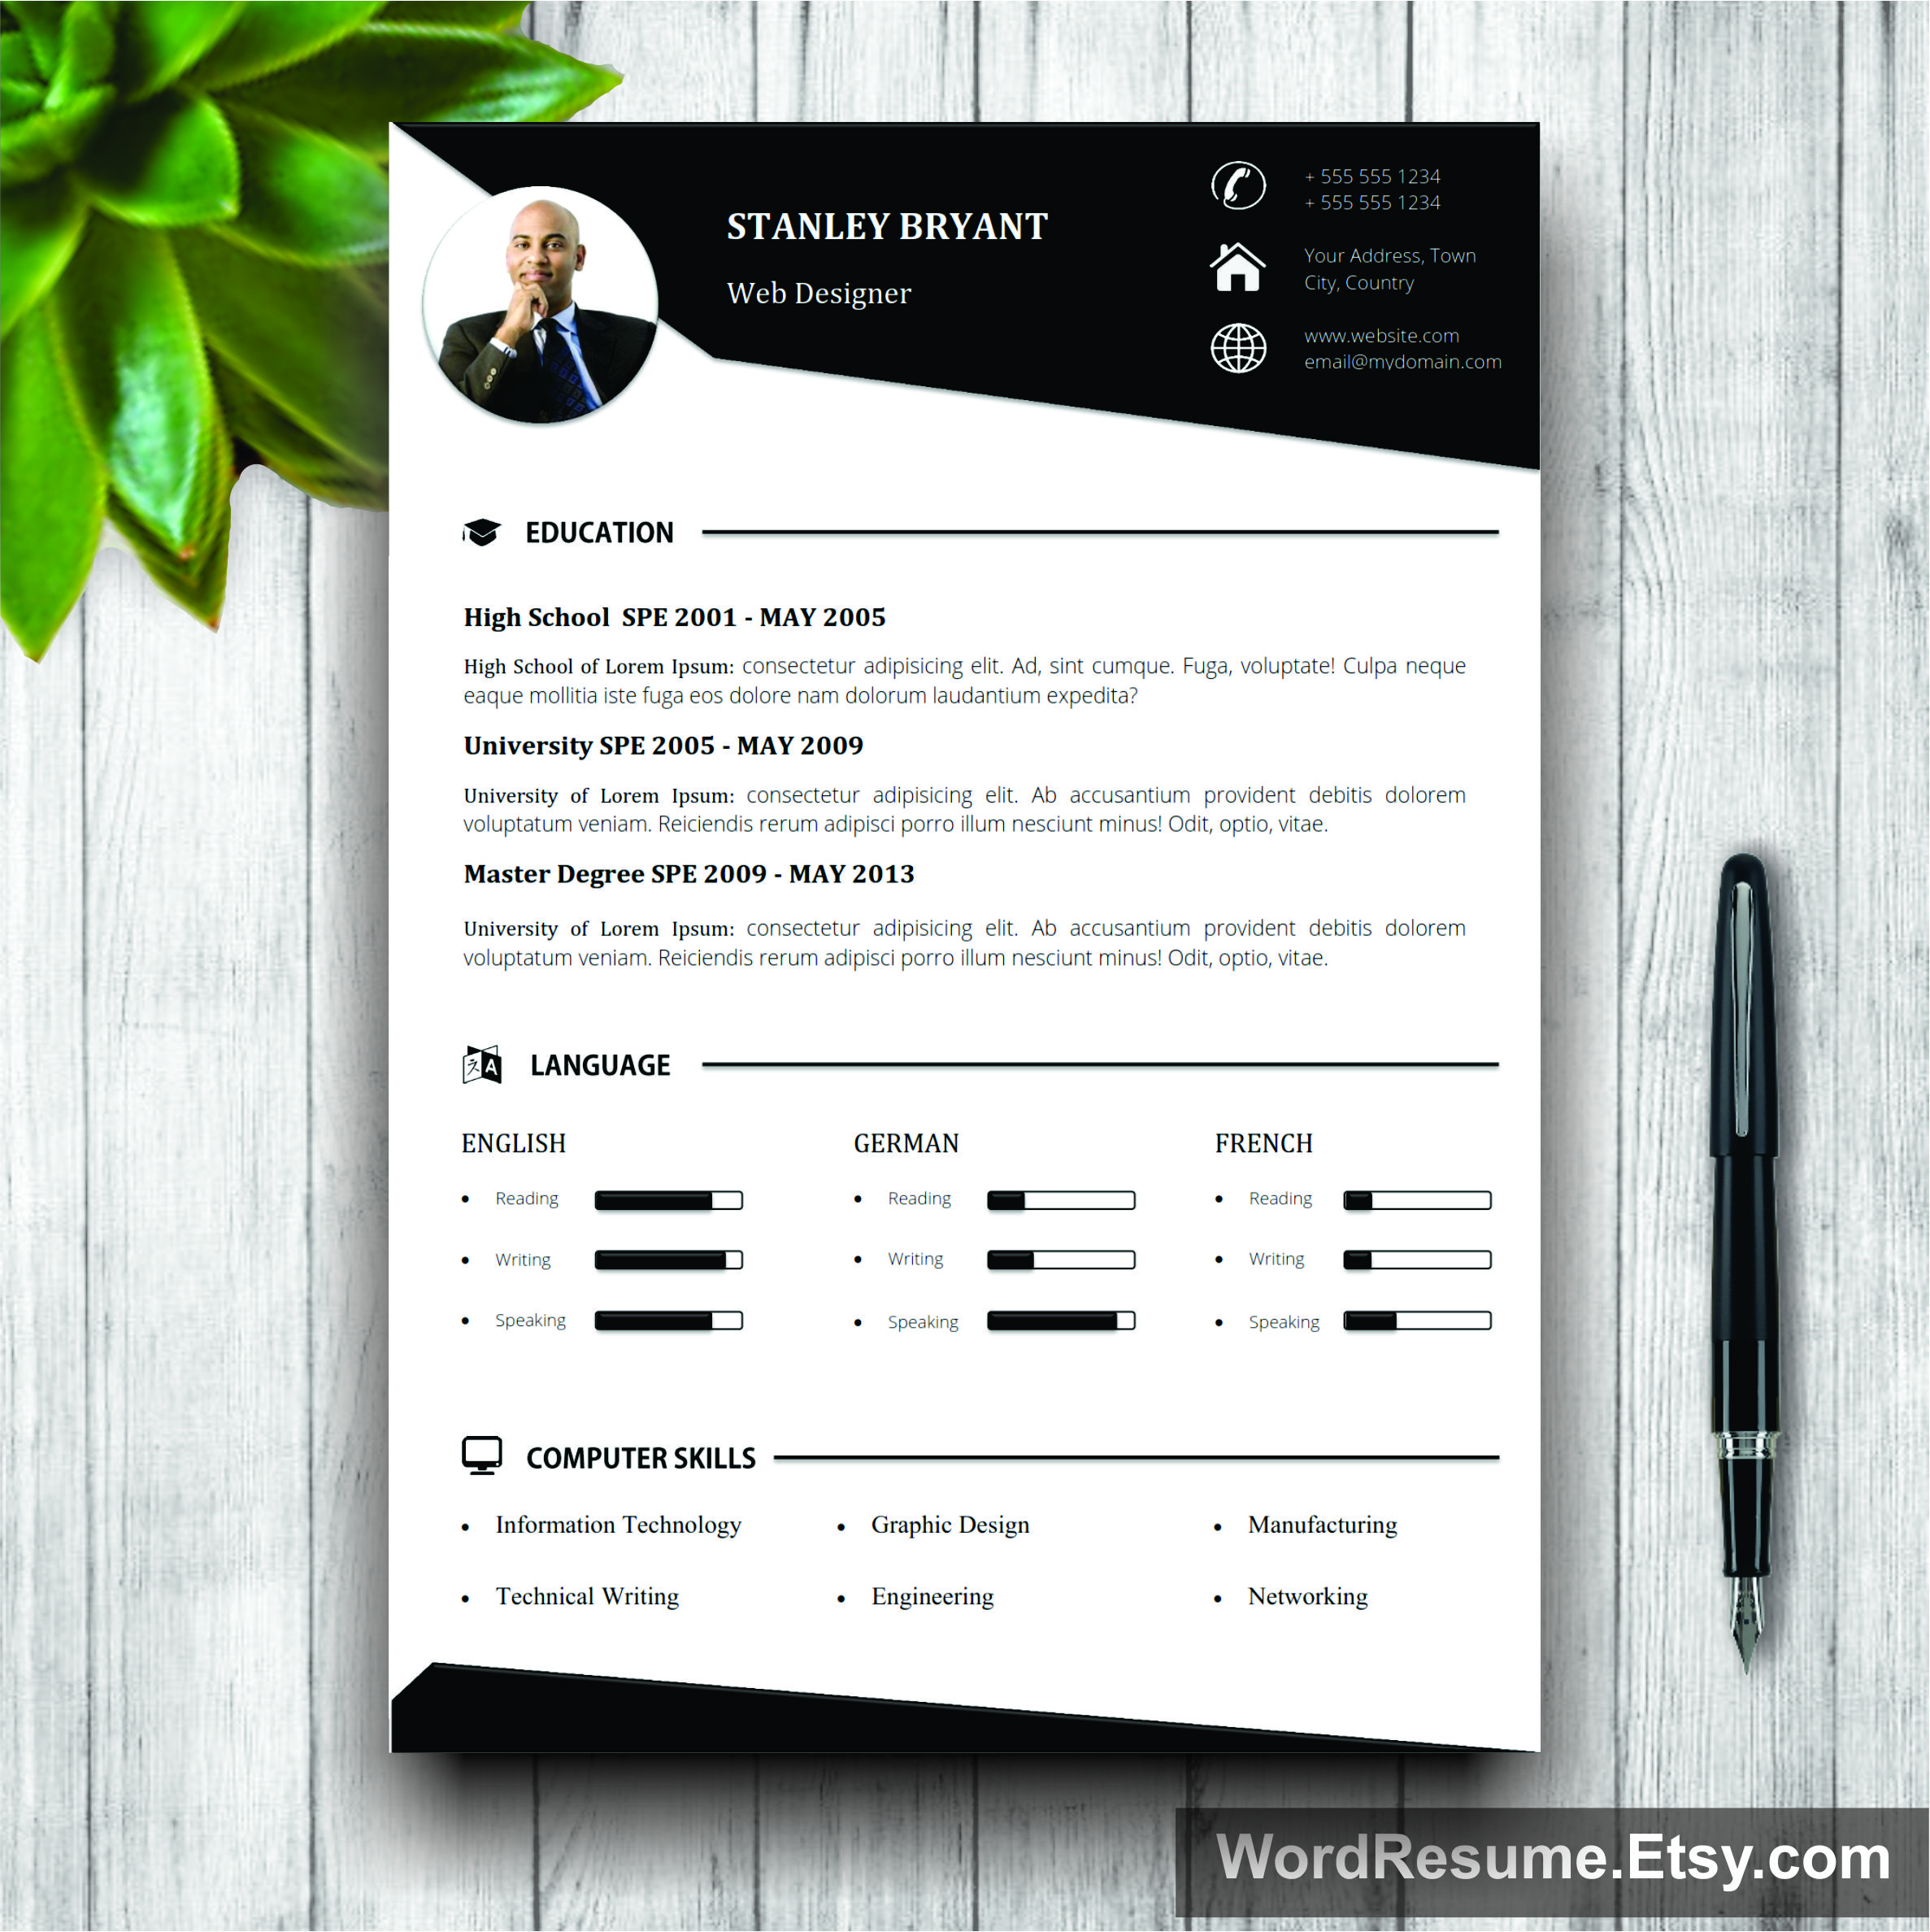 cv document download